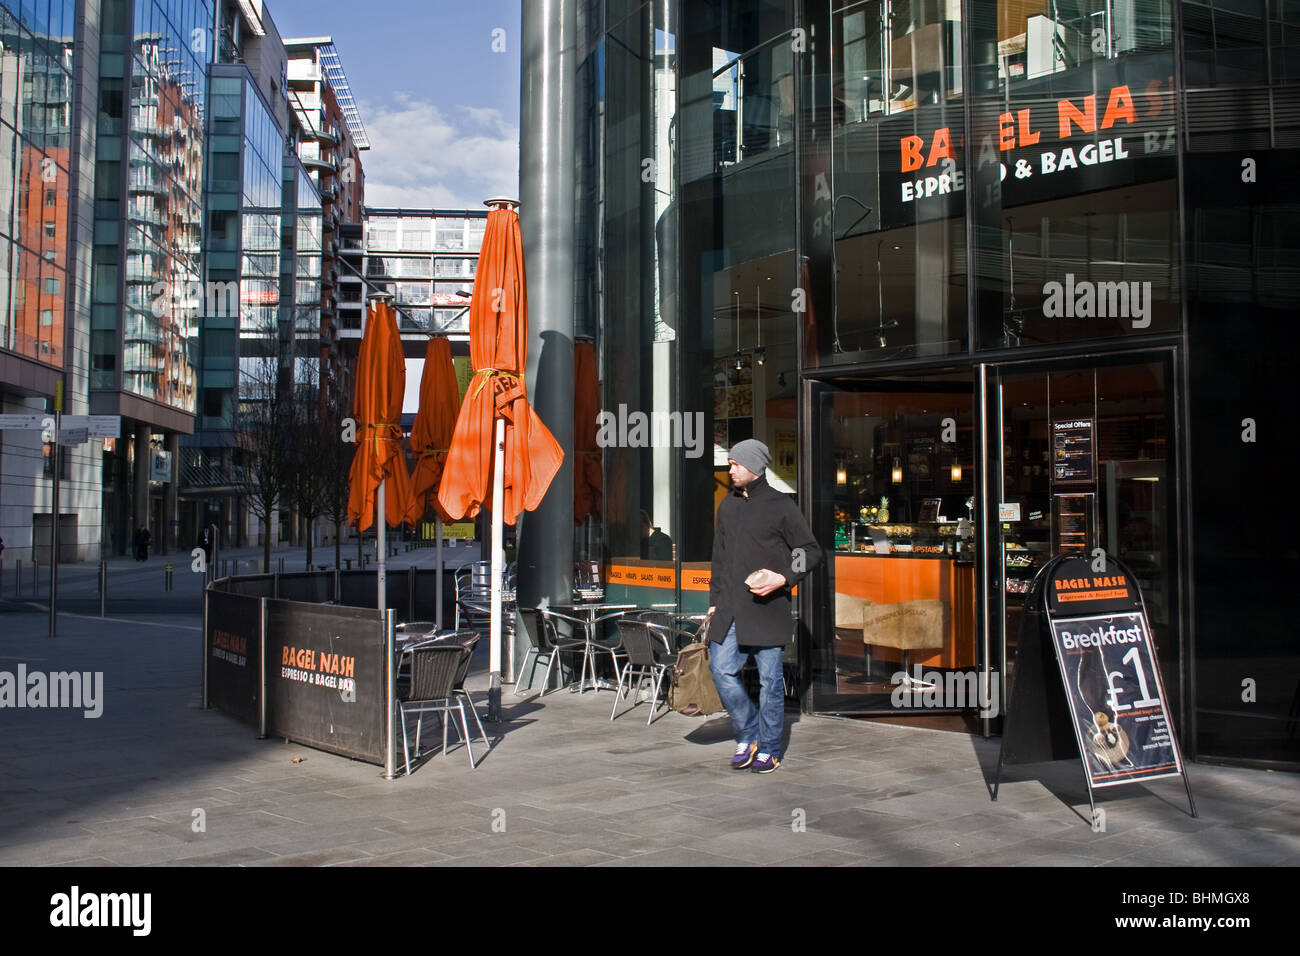 Spinningfields area of Manchester city centre, UK - Stock Image